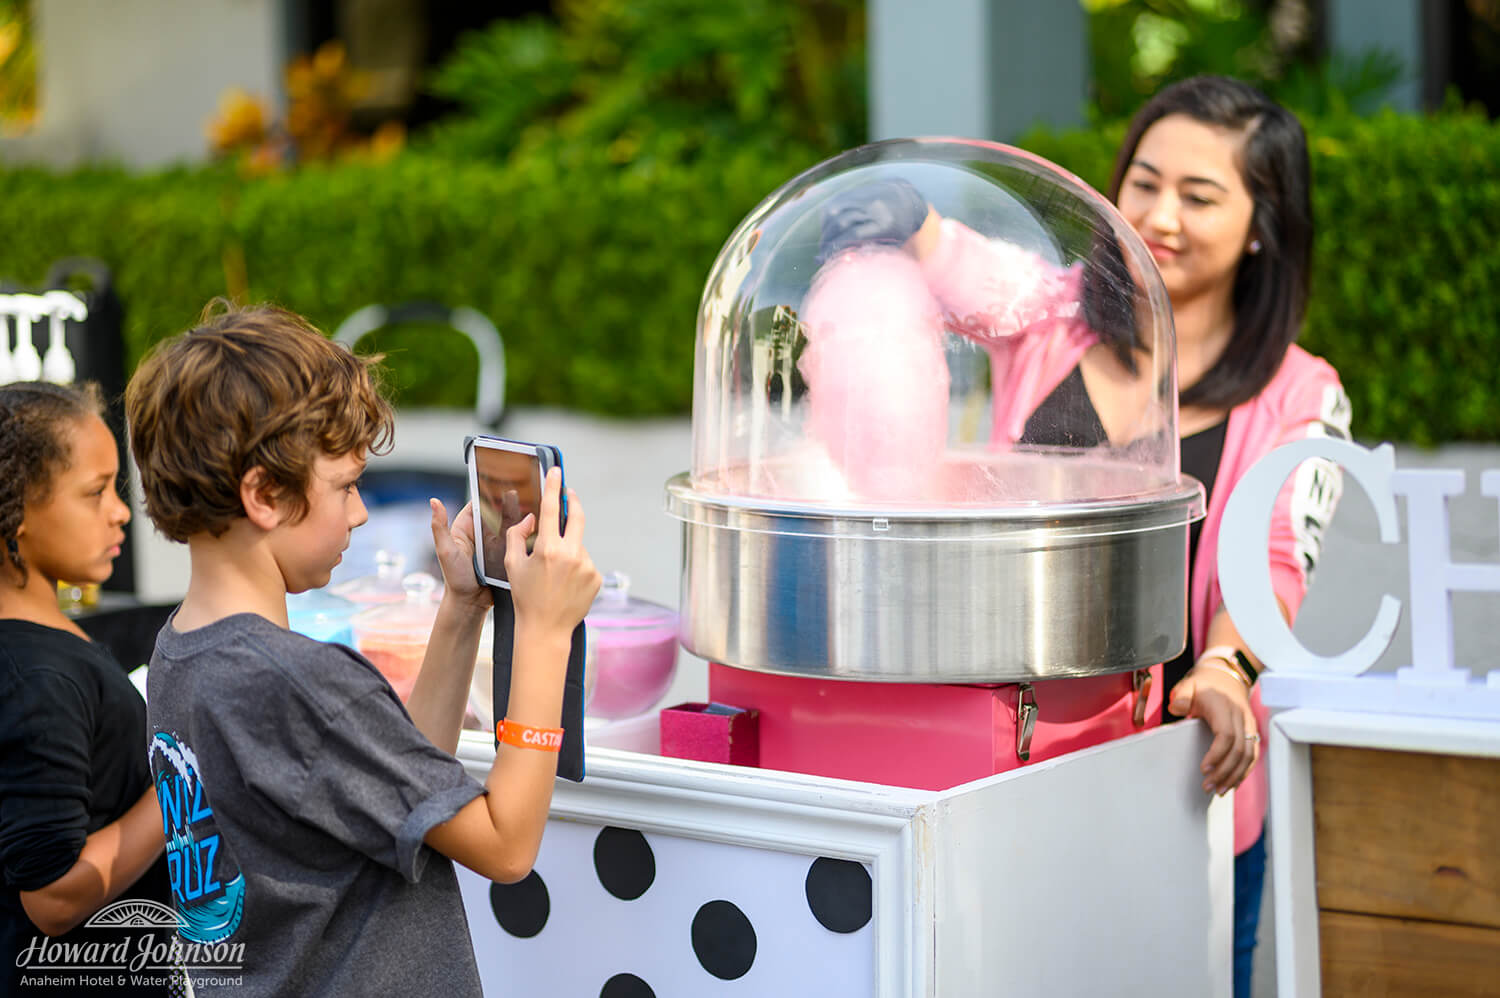 a young woman makes pink cotton candy for two children from a machine while one child takes a photo of it